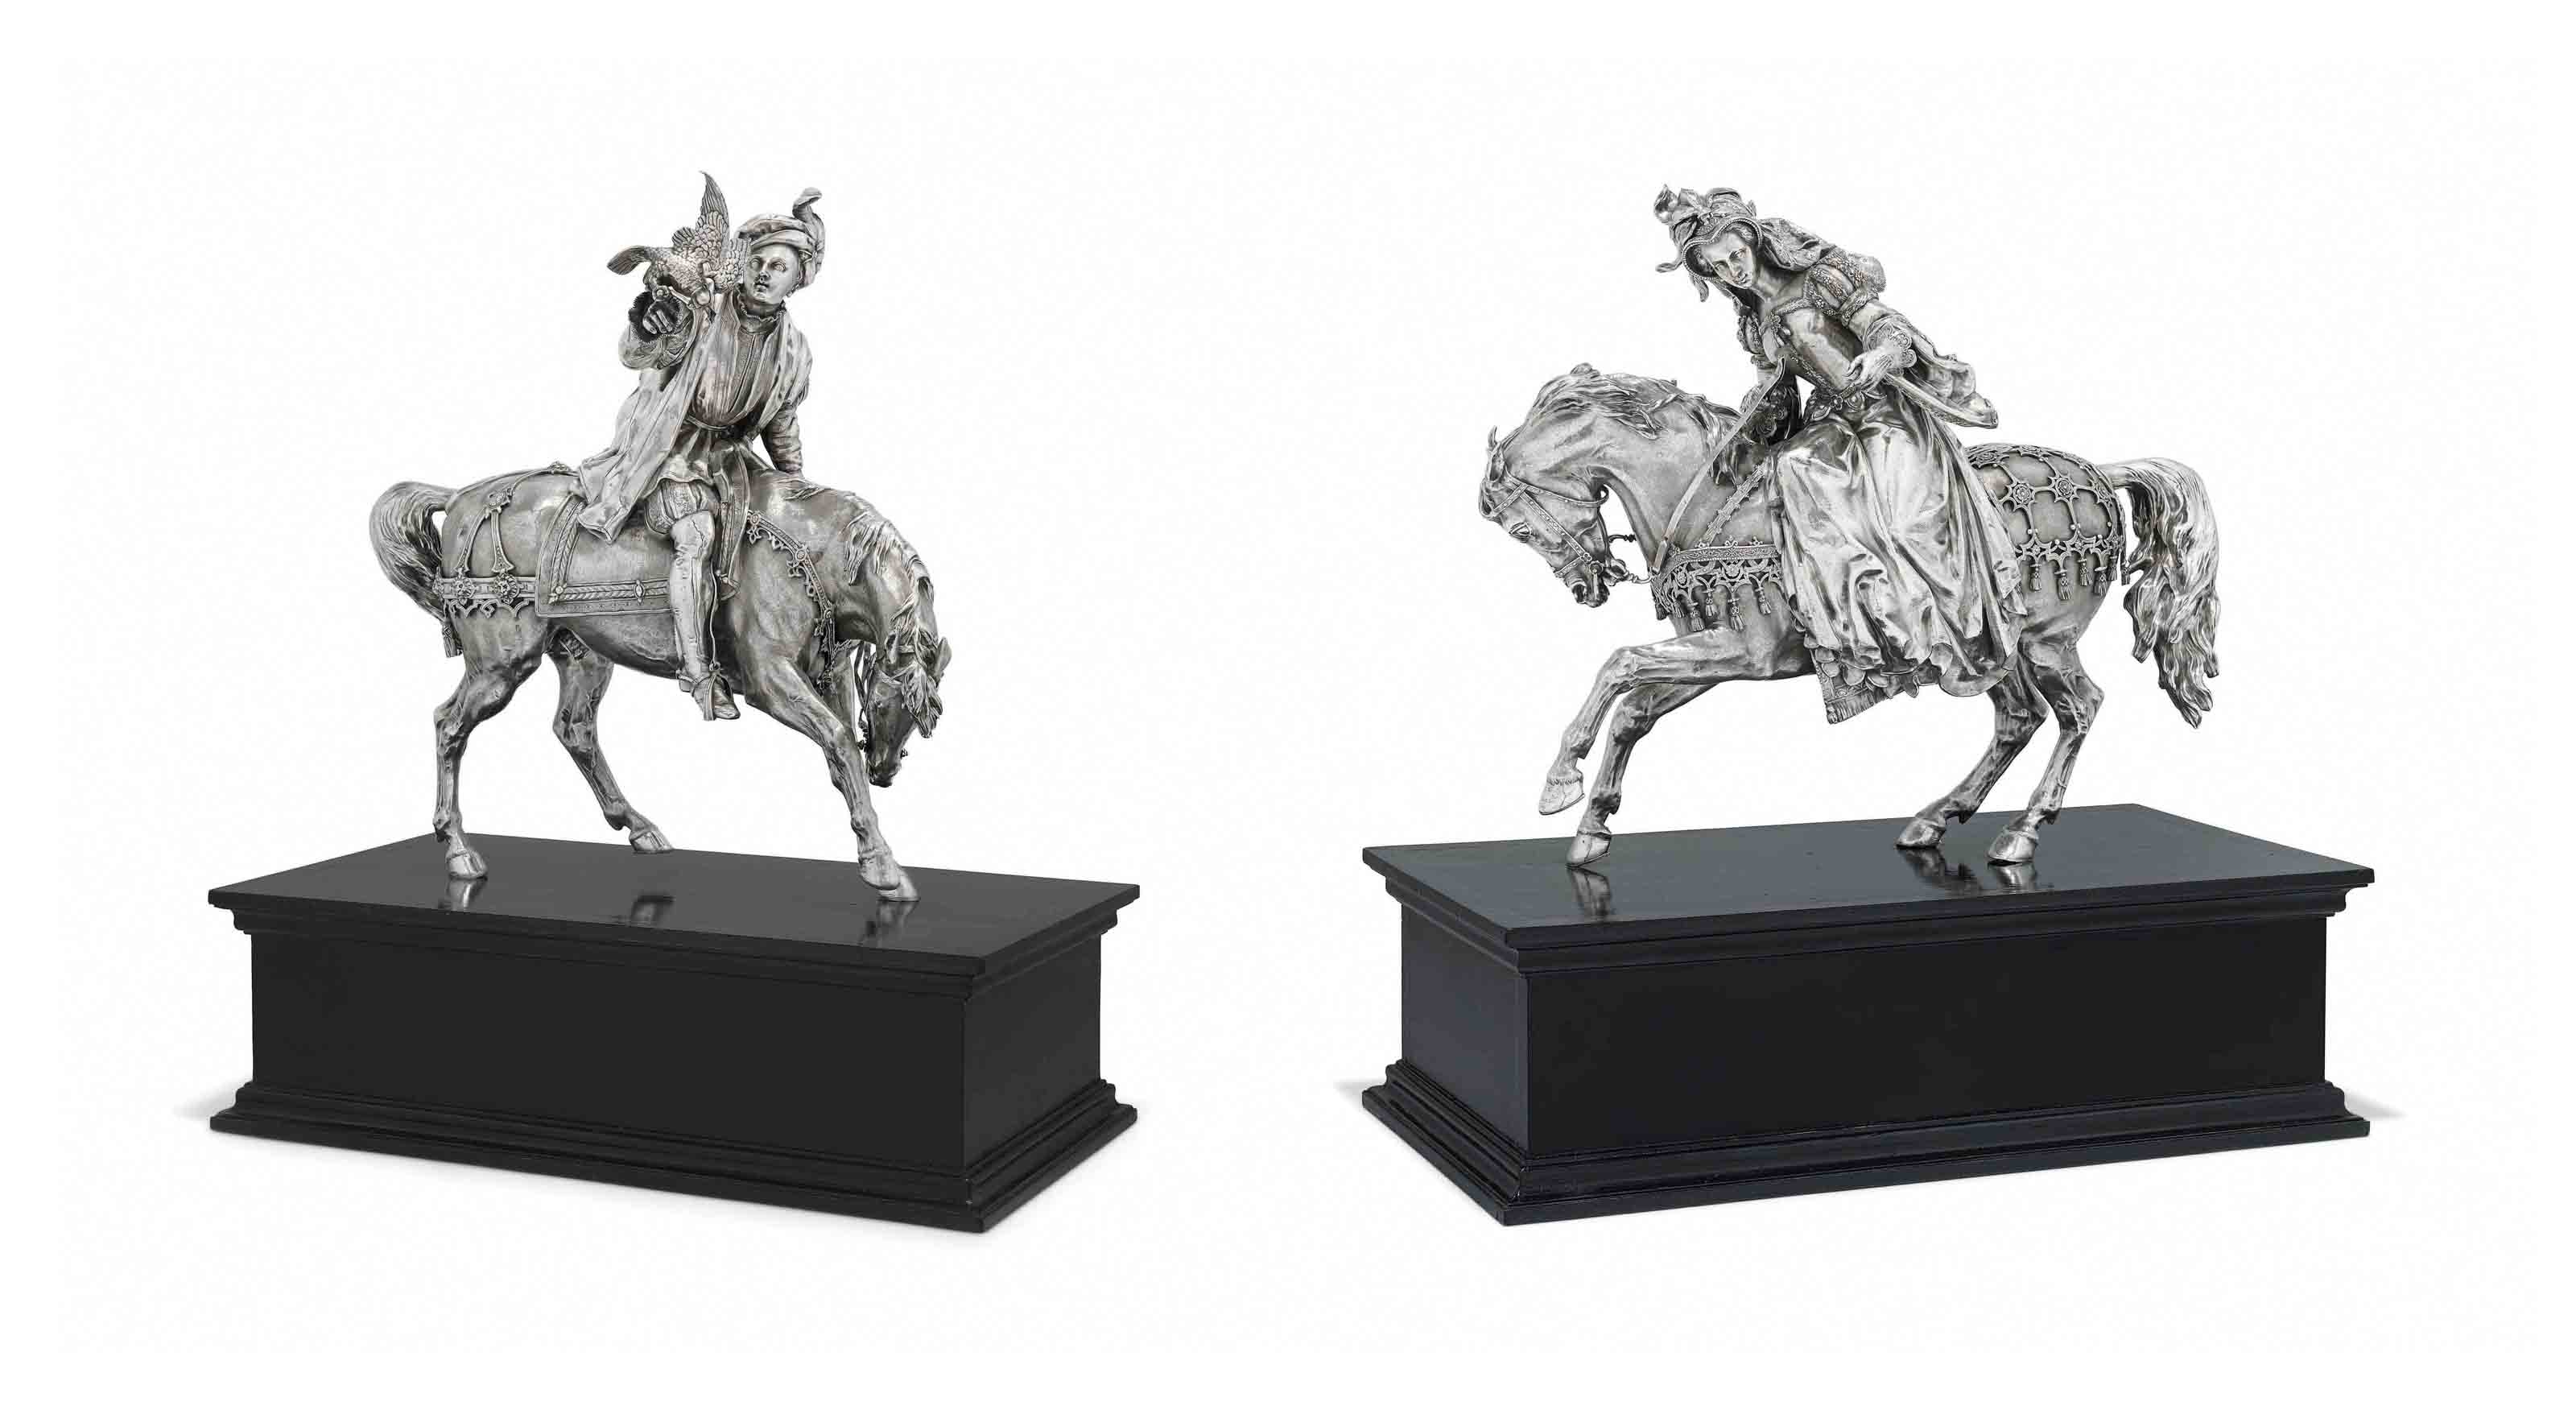 A PAIR OF VICTORIAN SILVER FIGURES ON HORSEBACK